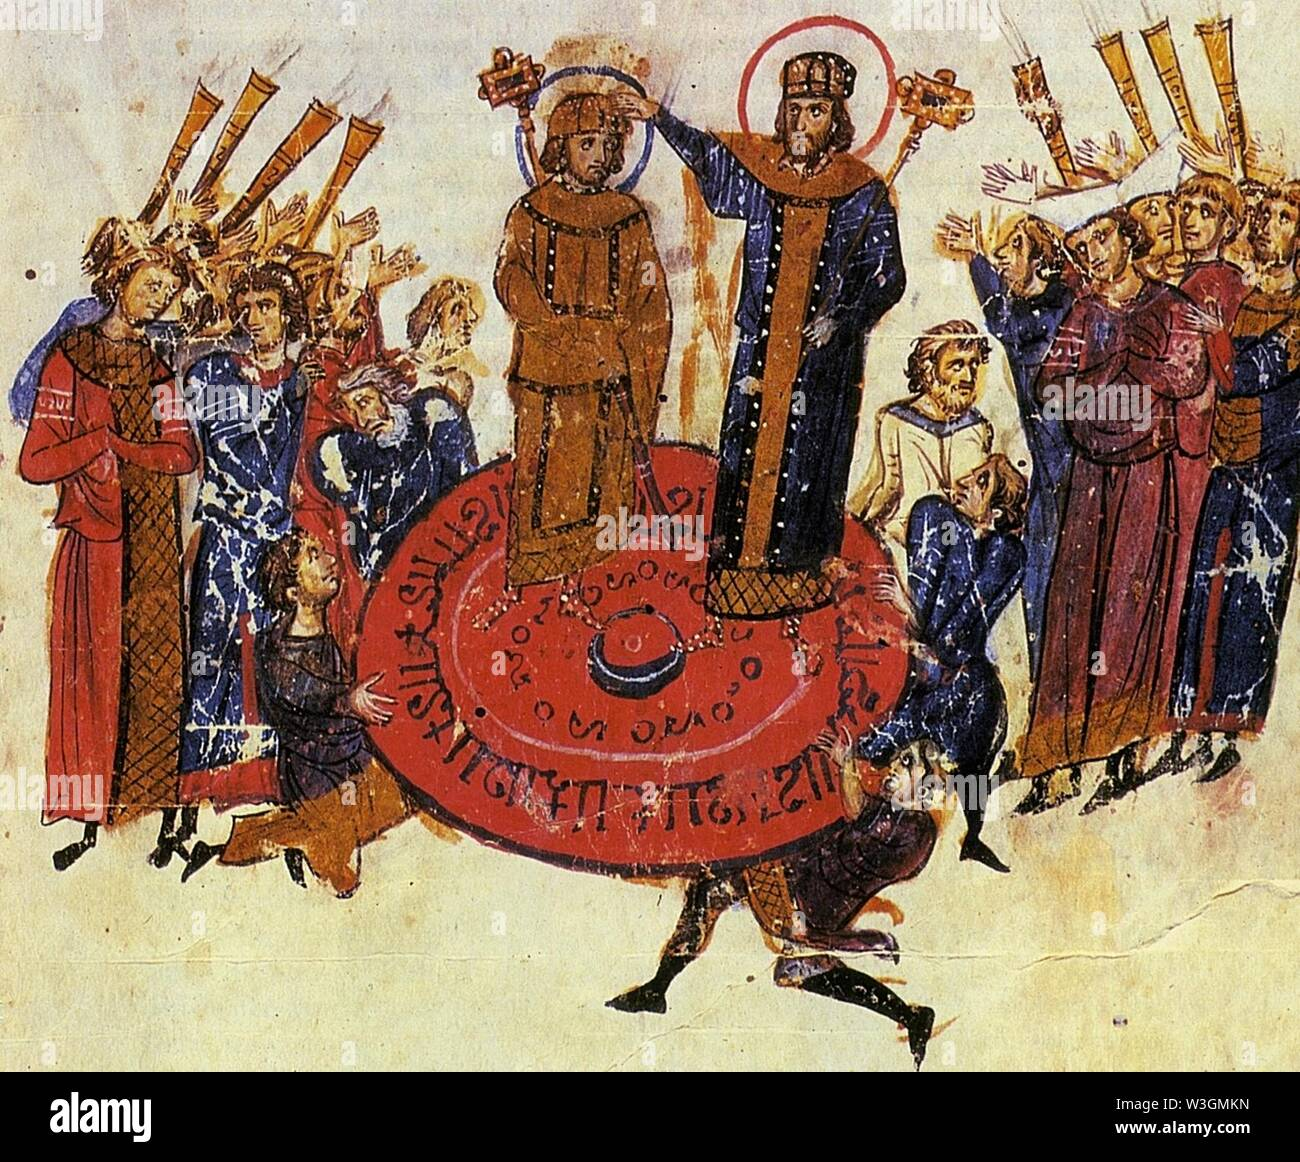 Chronicle by John Skylitzis, which depicts the elevation of the emperor on a shield by the soldiers. - Stock Image